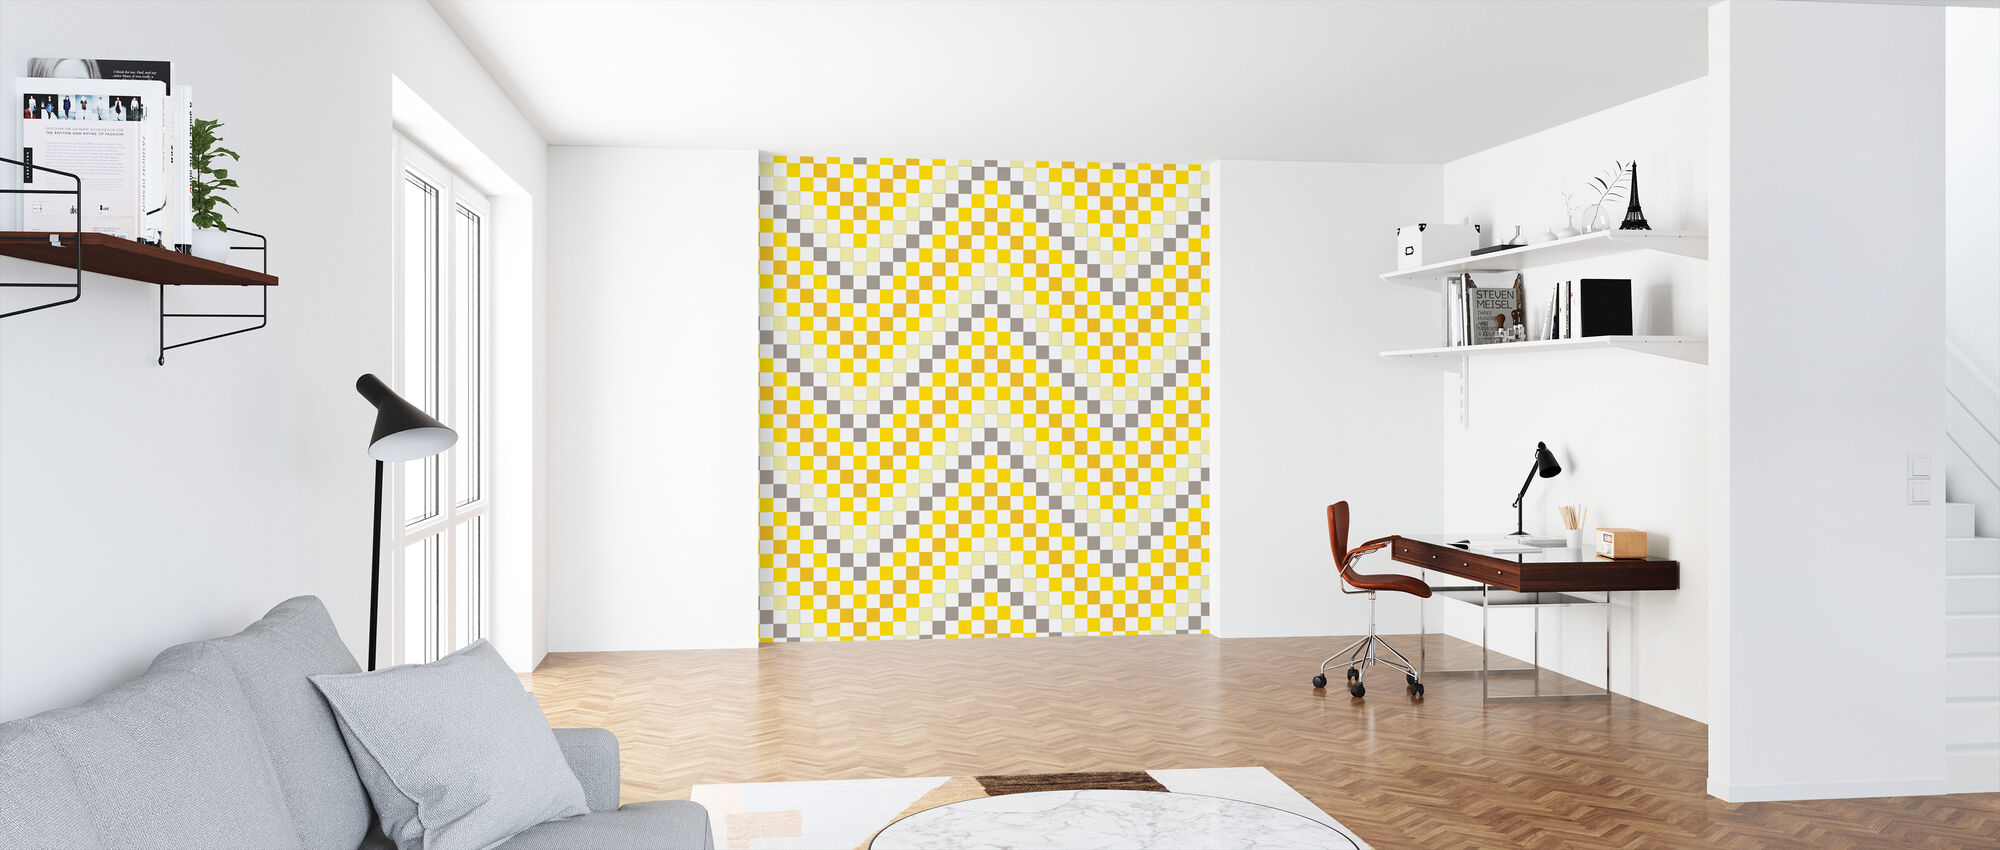 Going Geometric 4 - Wallpaper - Office